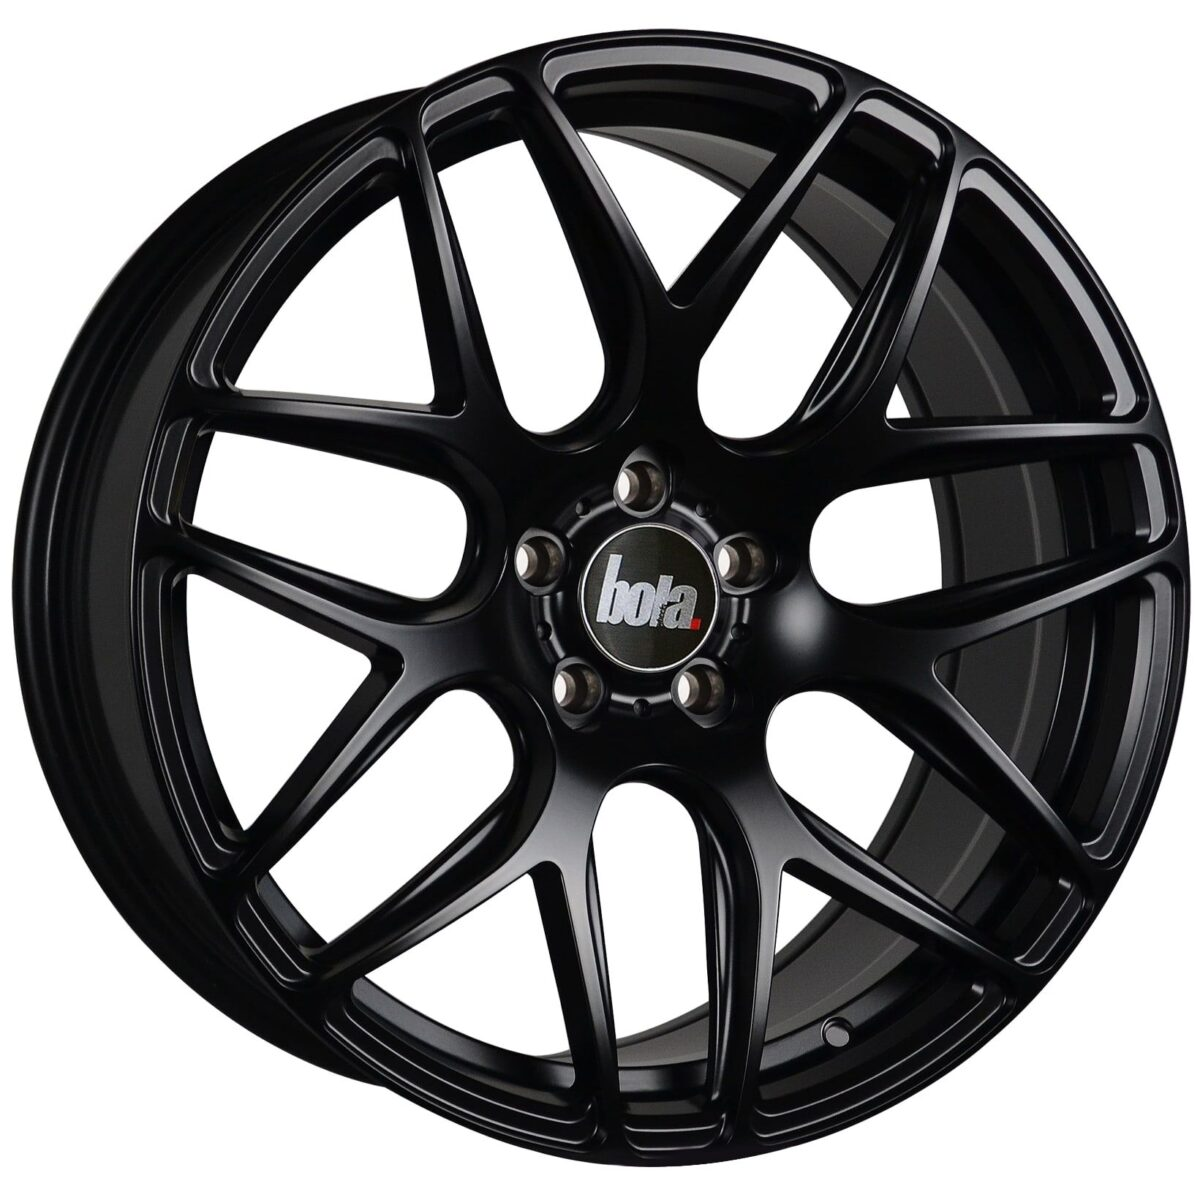 "18"" BOLA B8R Wheels - Matt Black - VW / Audi / Mercedes - 5x112"